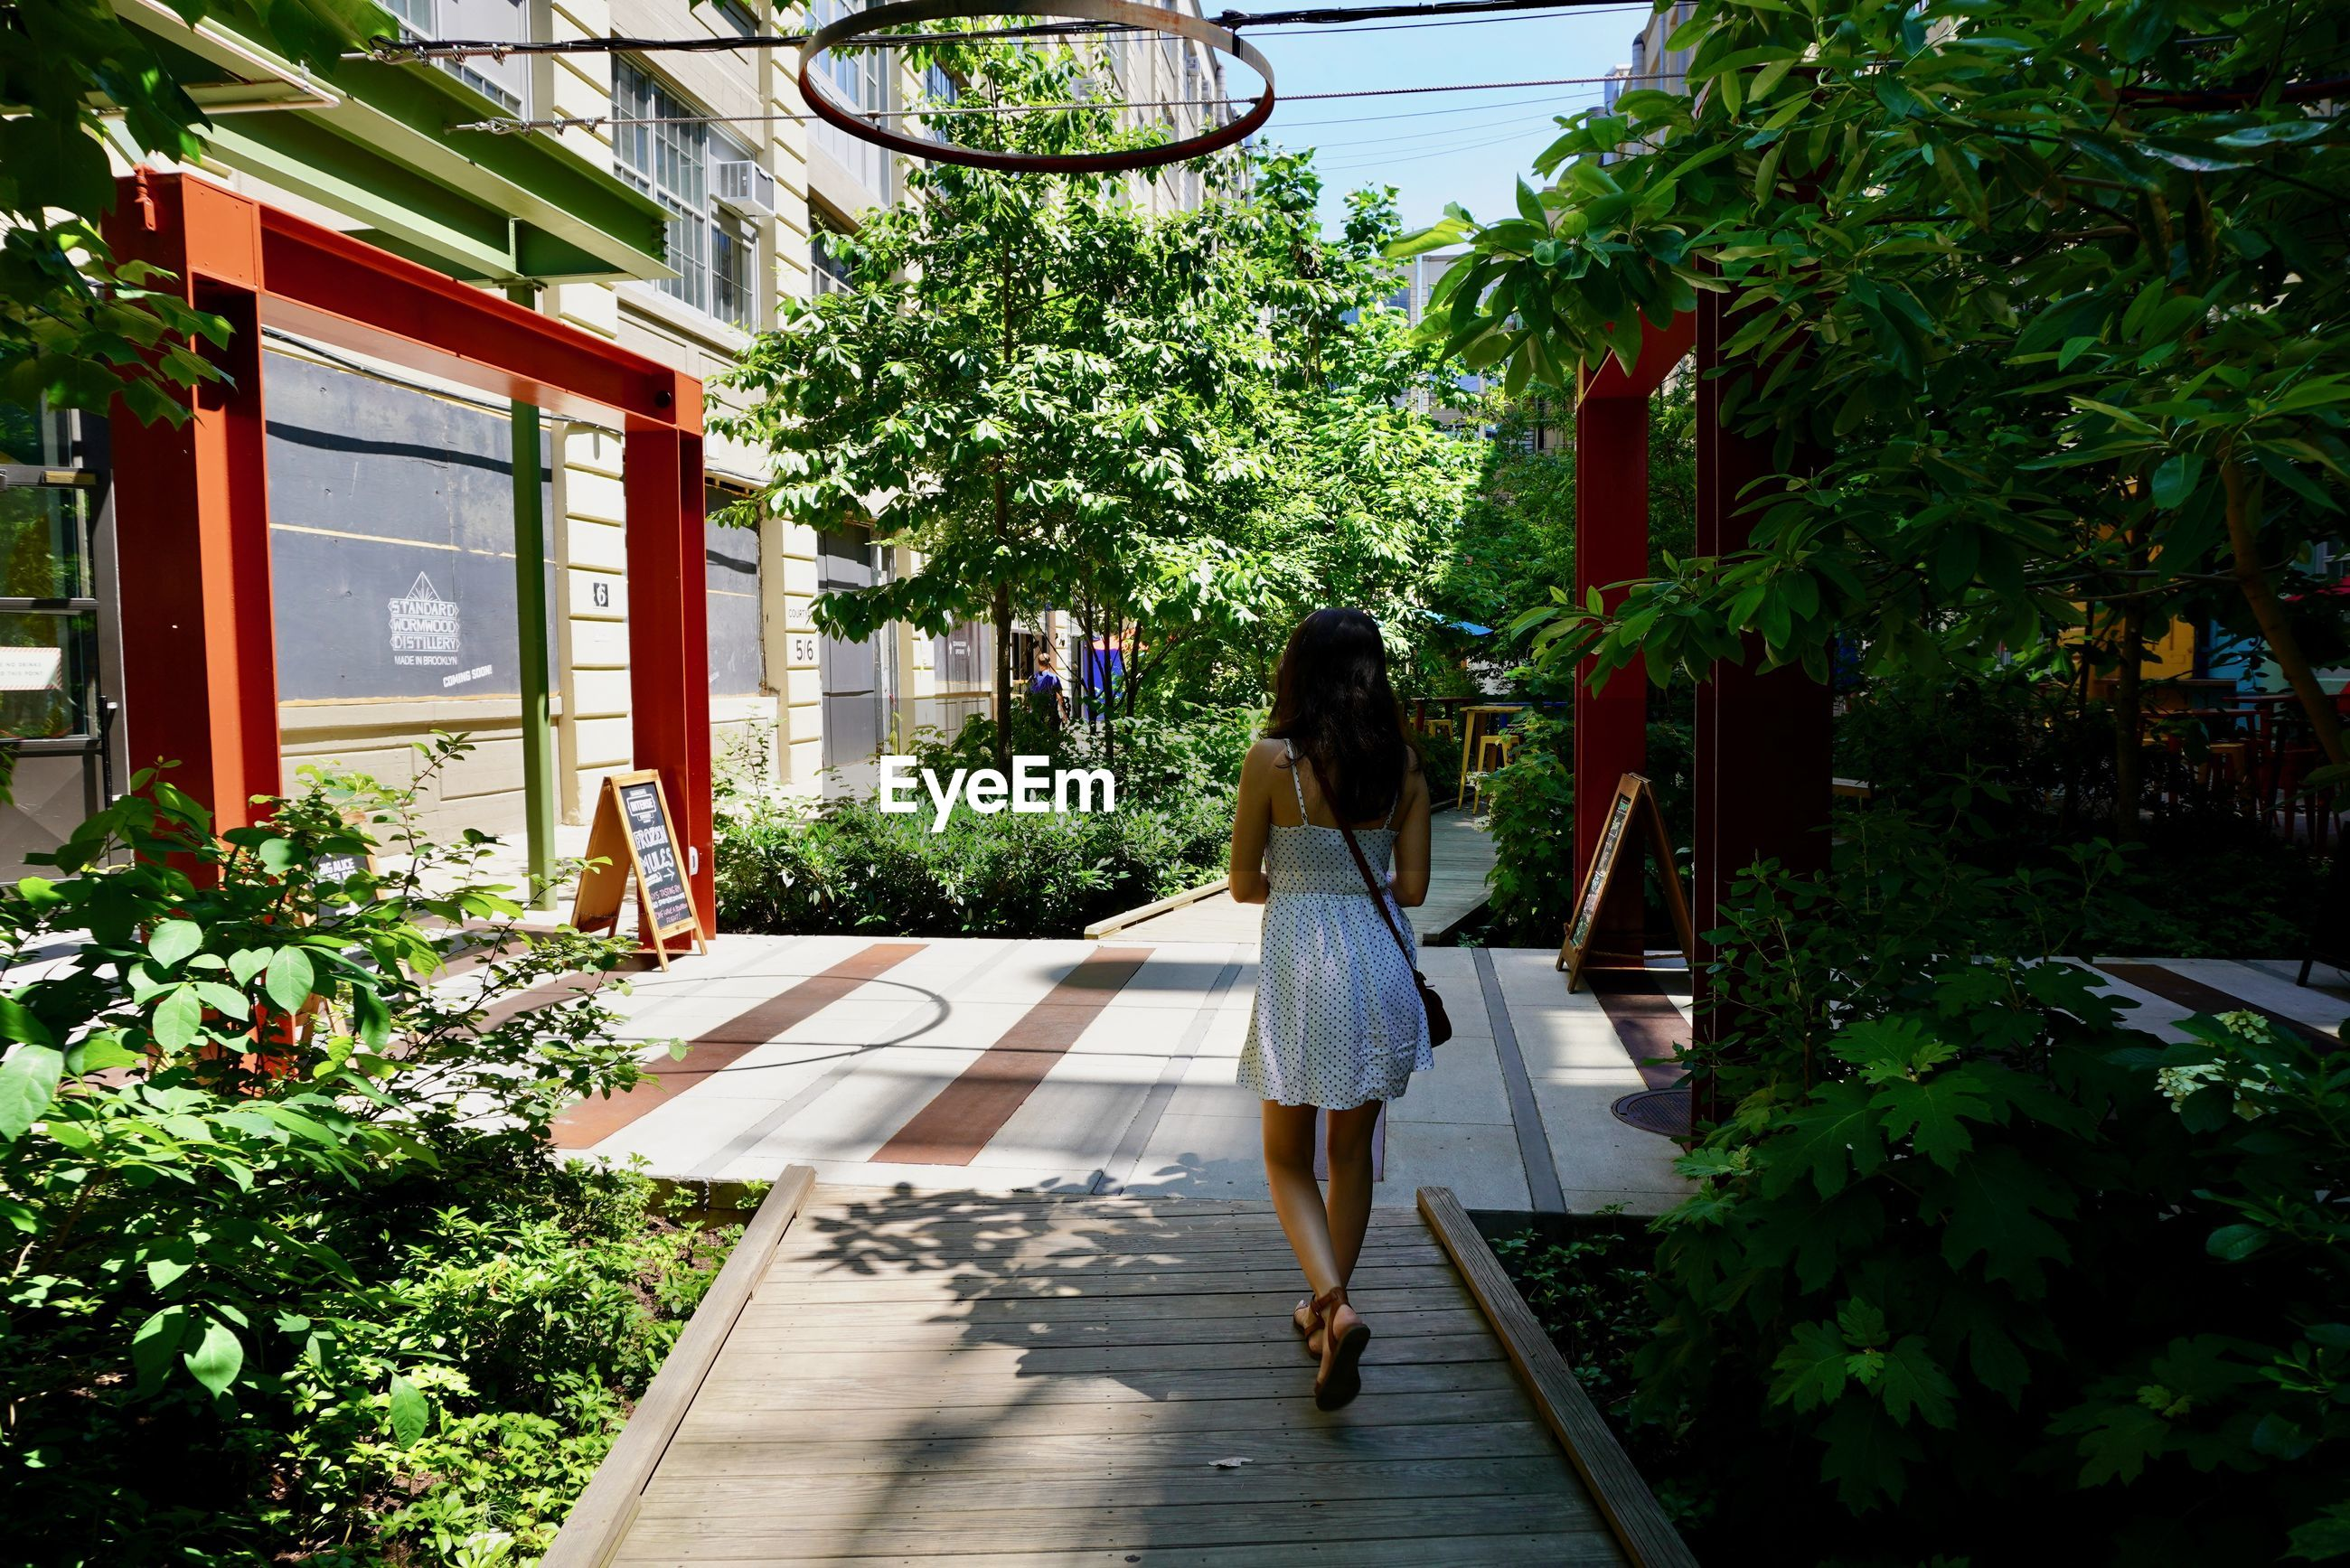 REAR VIEW OF WOMAN WALKING BY BUILDING AGAINST TREES